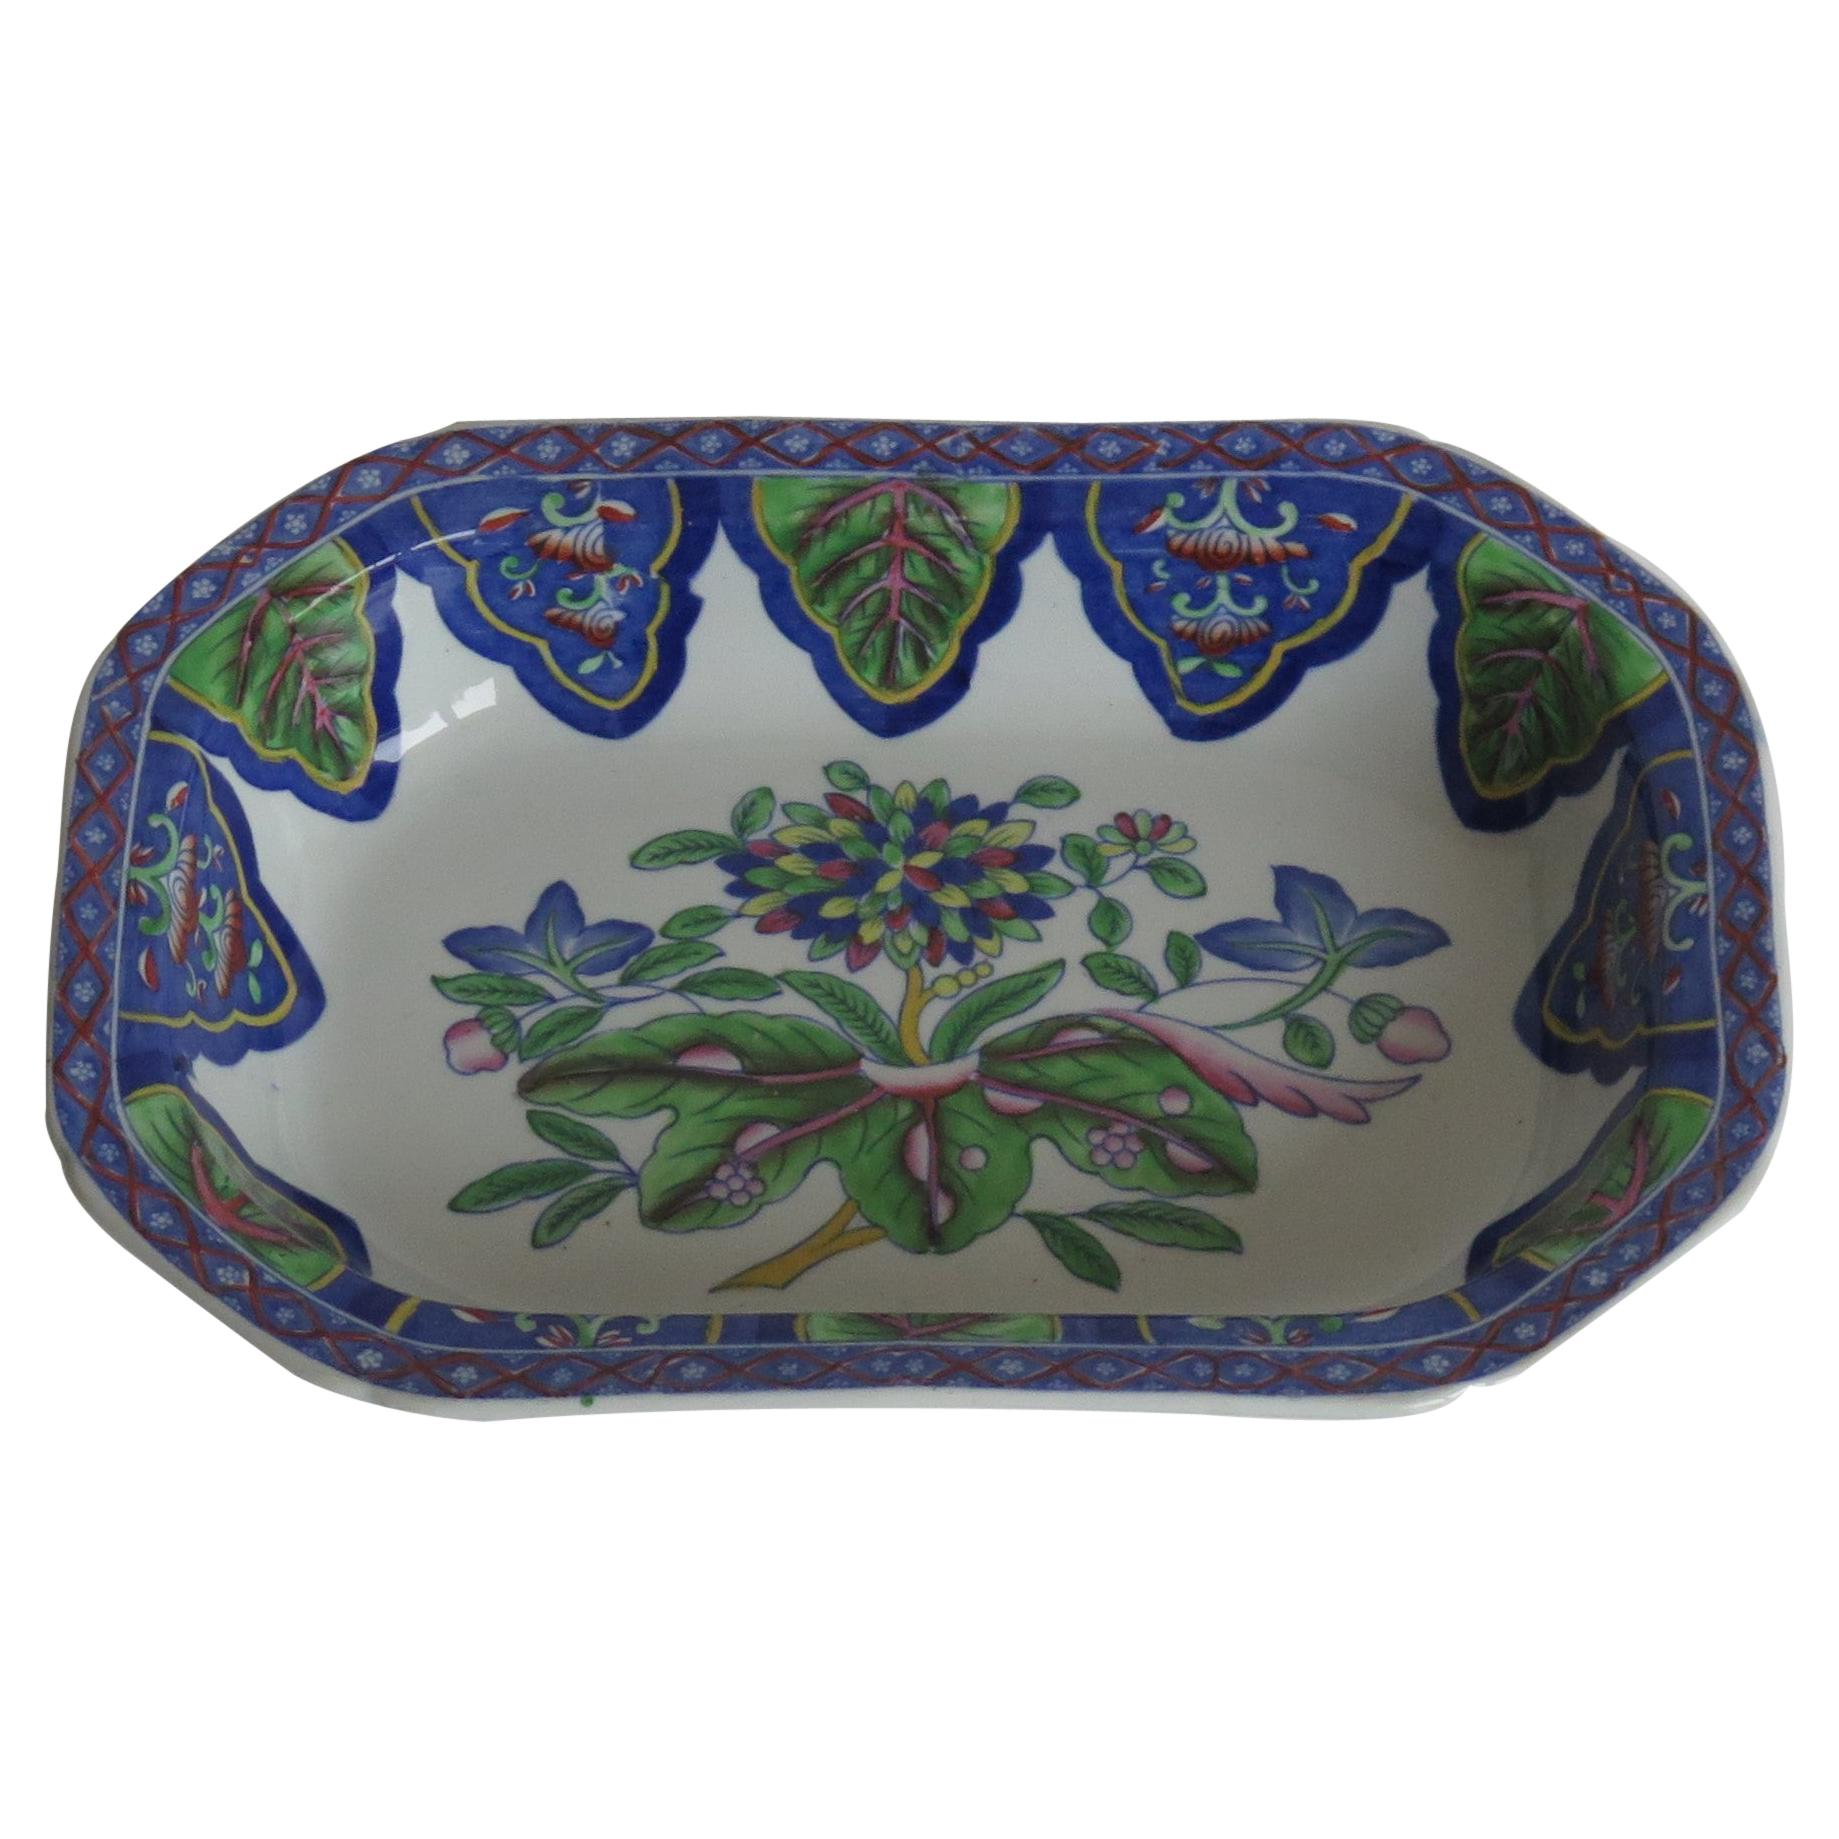 William IV Bowls and Baskets